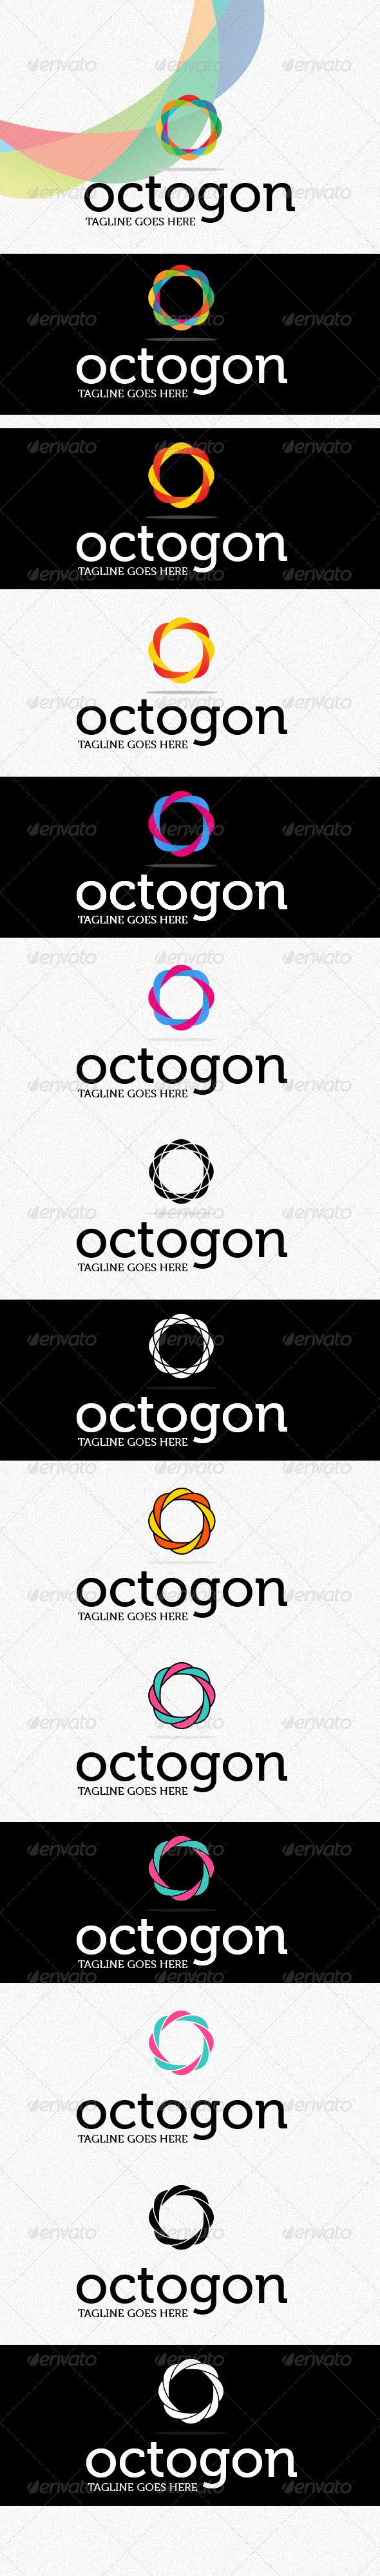 Octogon Logo - Vector Abstract